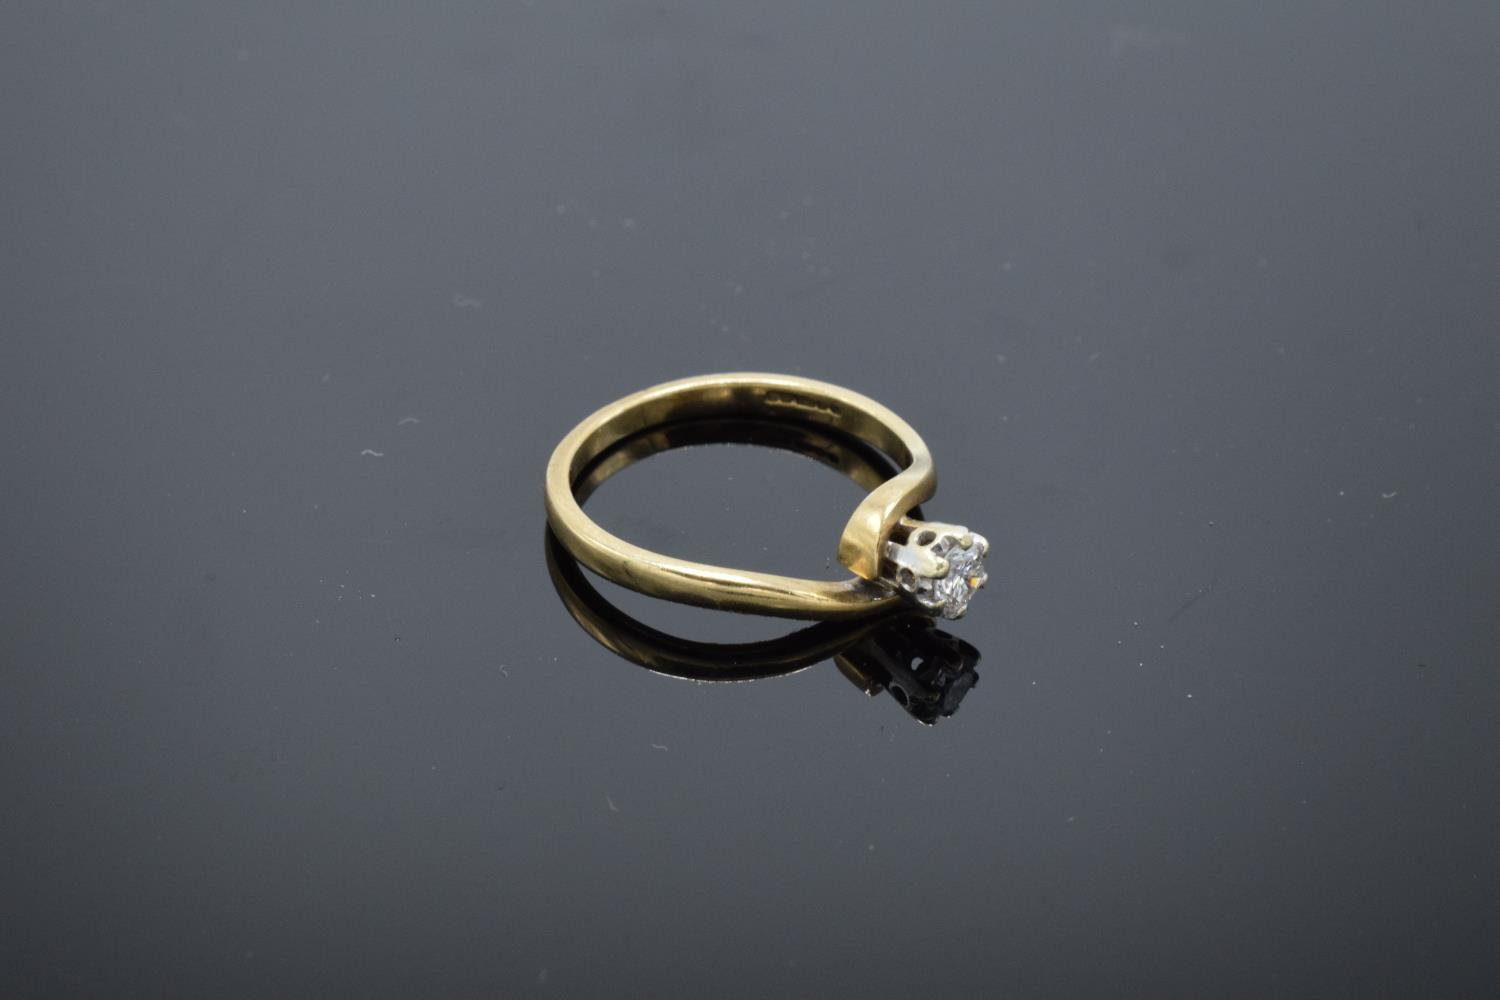 9ct gold ladies solitaire diamond ring. UK size L/M. 1.8 grams gross weight. Full hallmarks. - Image 2 of 4